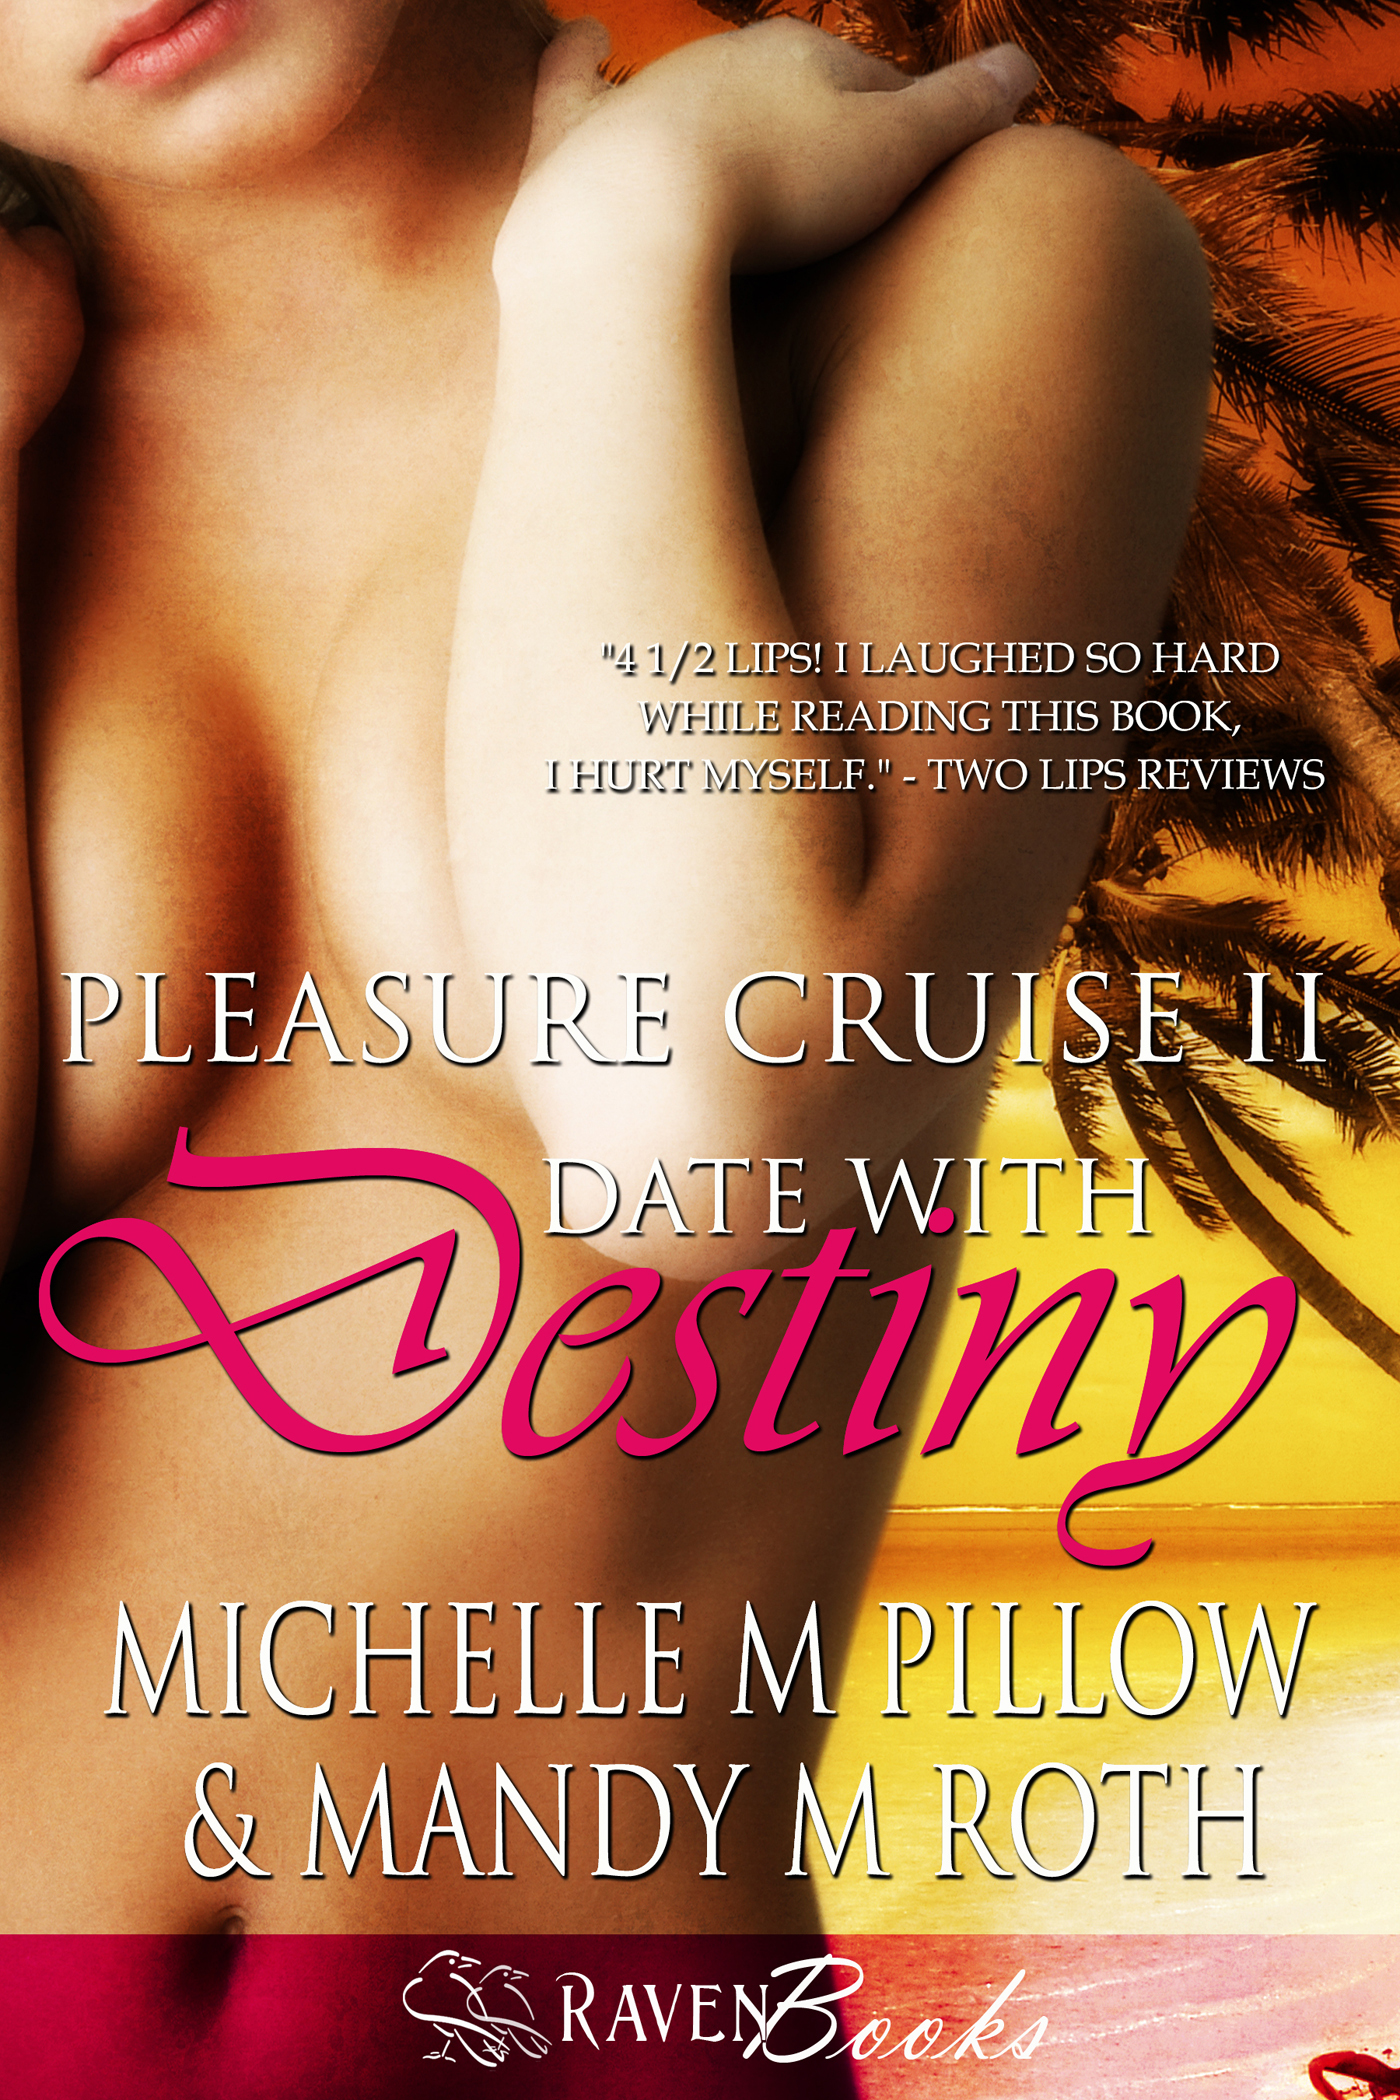 Michelle M. Pillow  Mandy M. Roth - Date with Destiny (Pleasure Cruise 2)